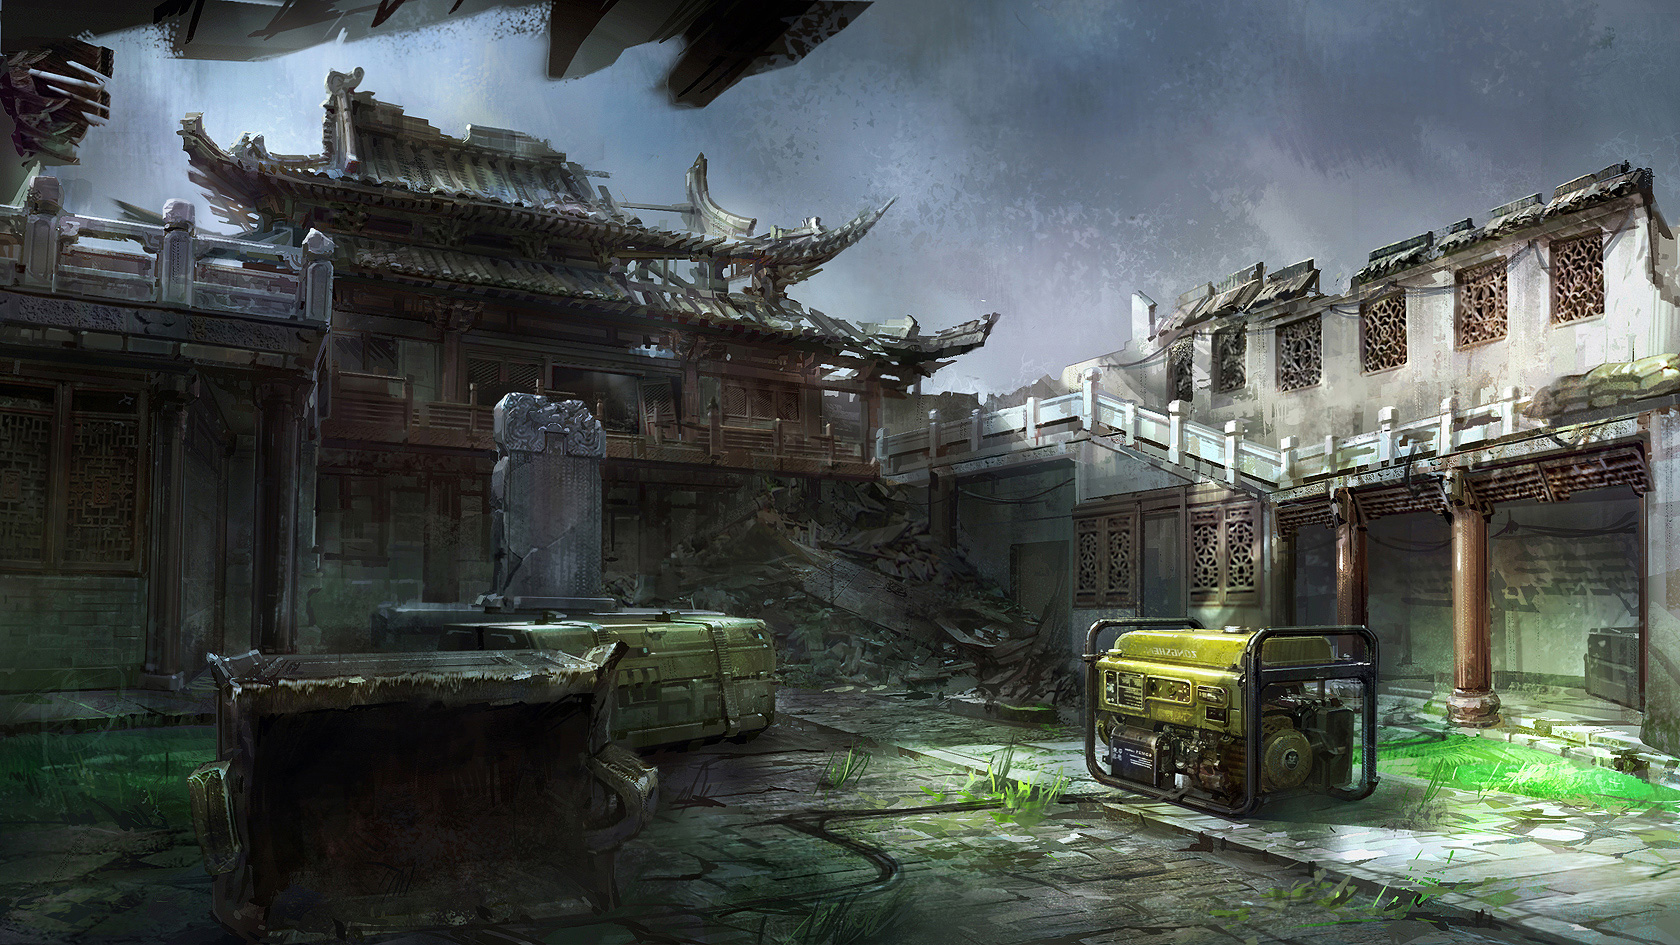 Yuanda Yu Concept Art Illustration Rf Env Losttemple1